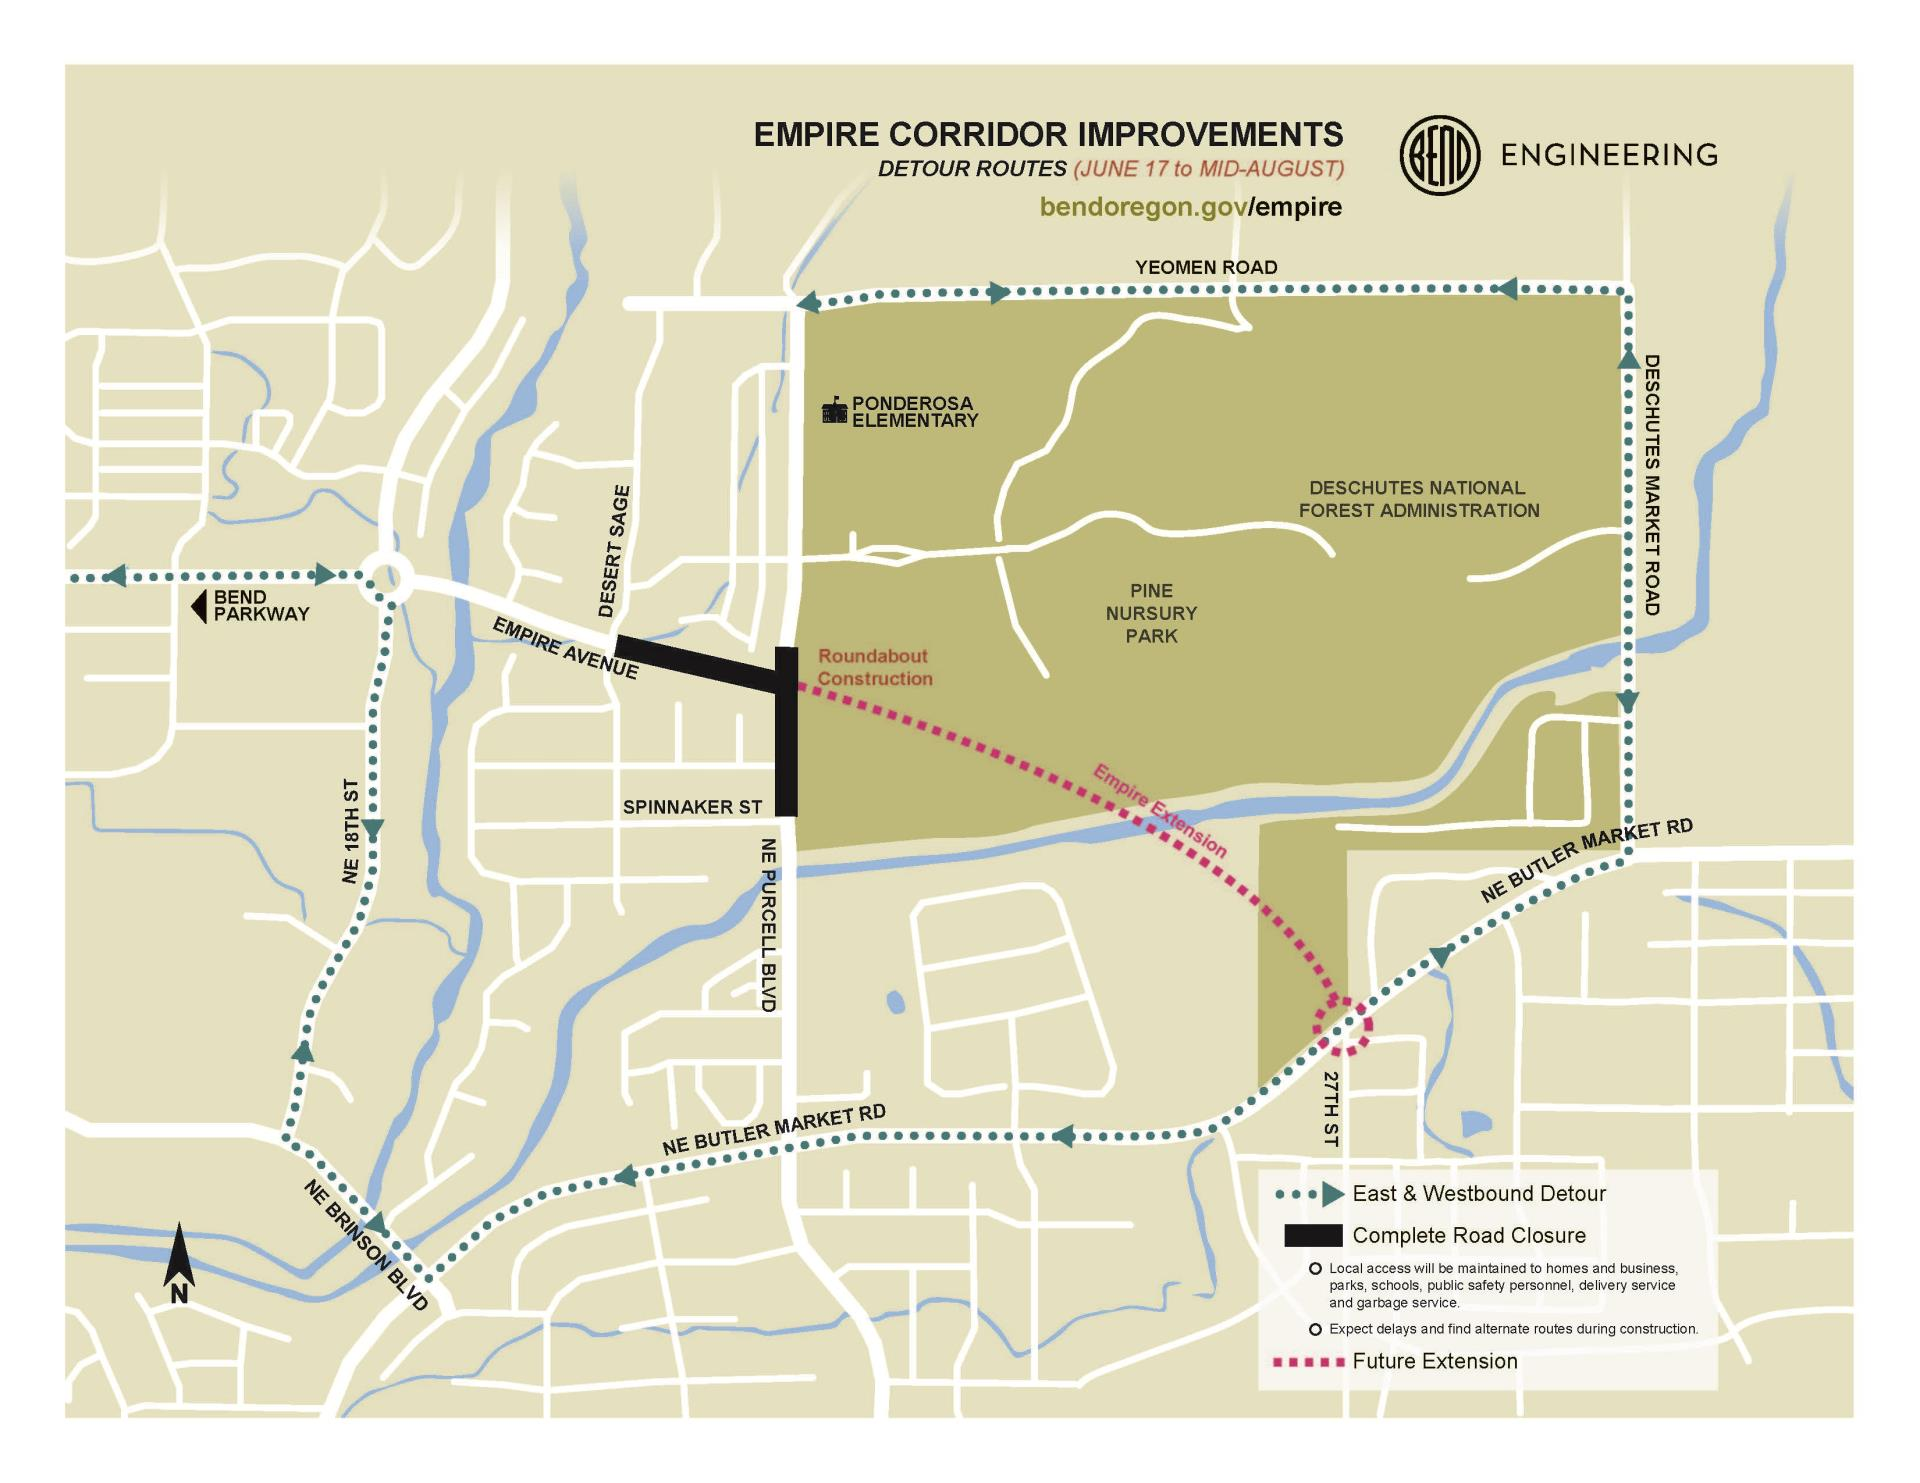 Empire Corridor Horizontal Detour Maps June 17